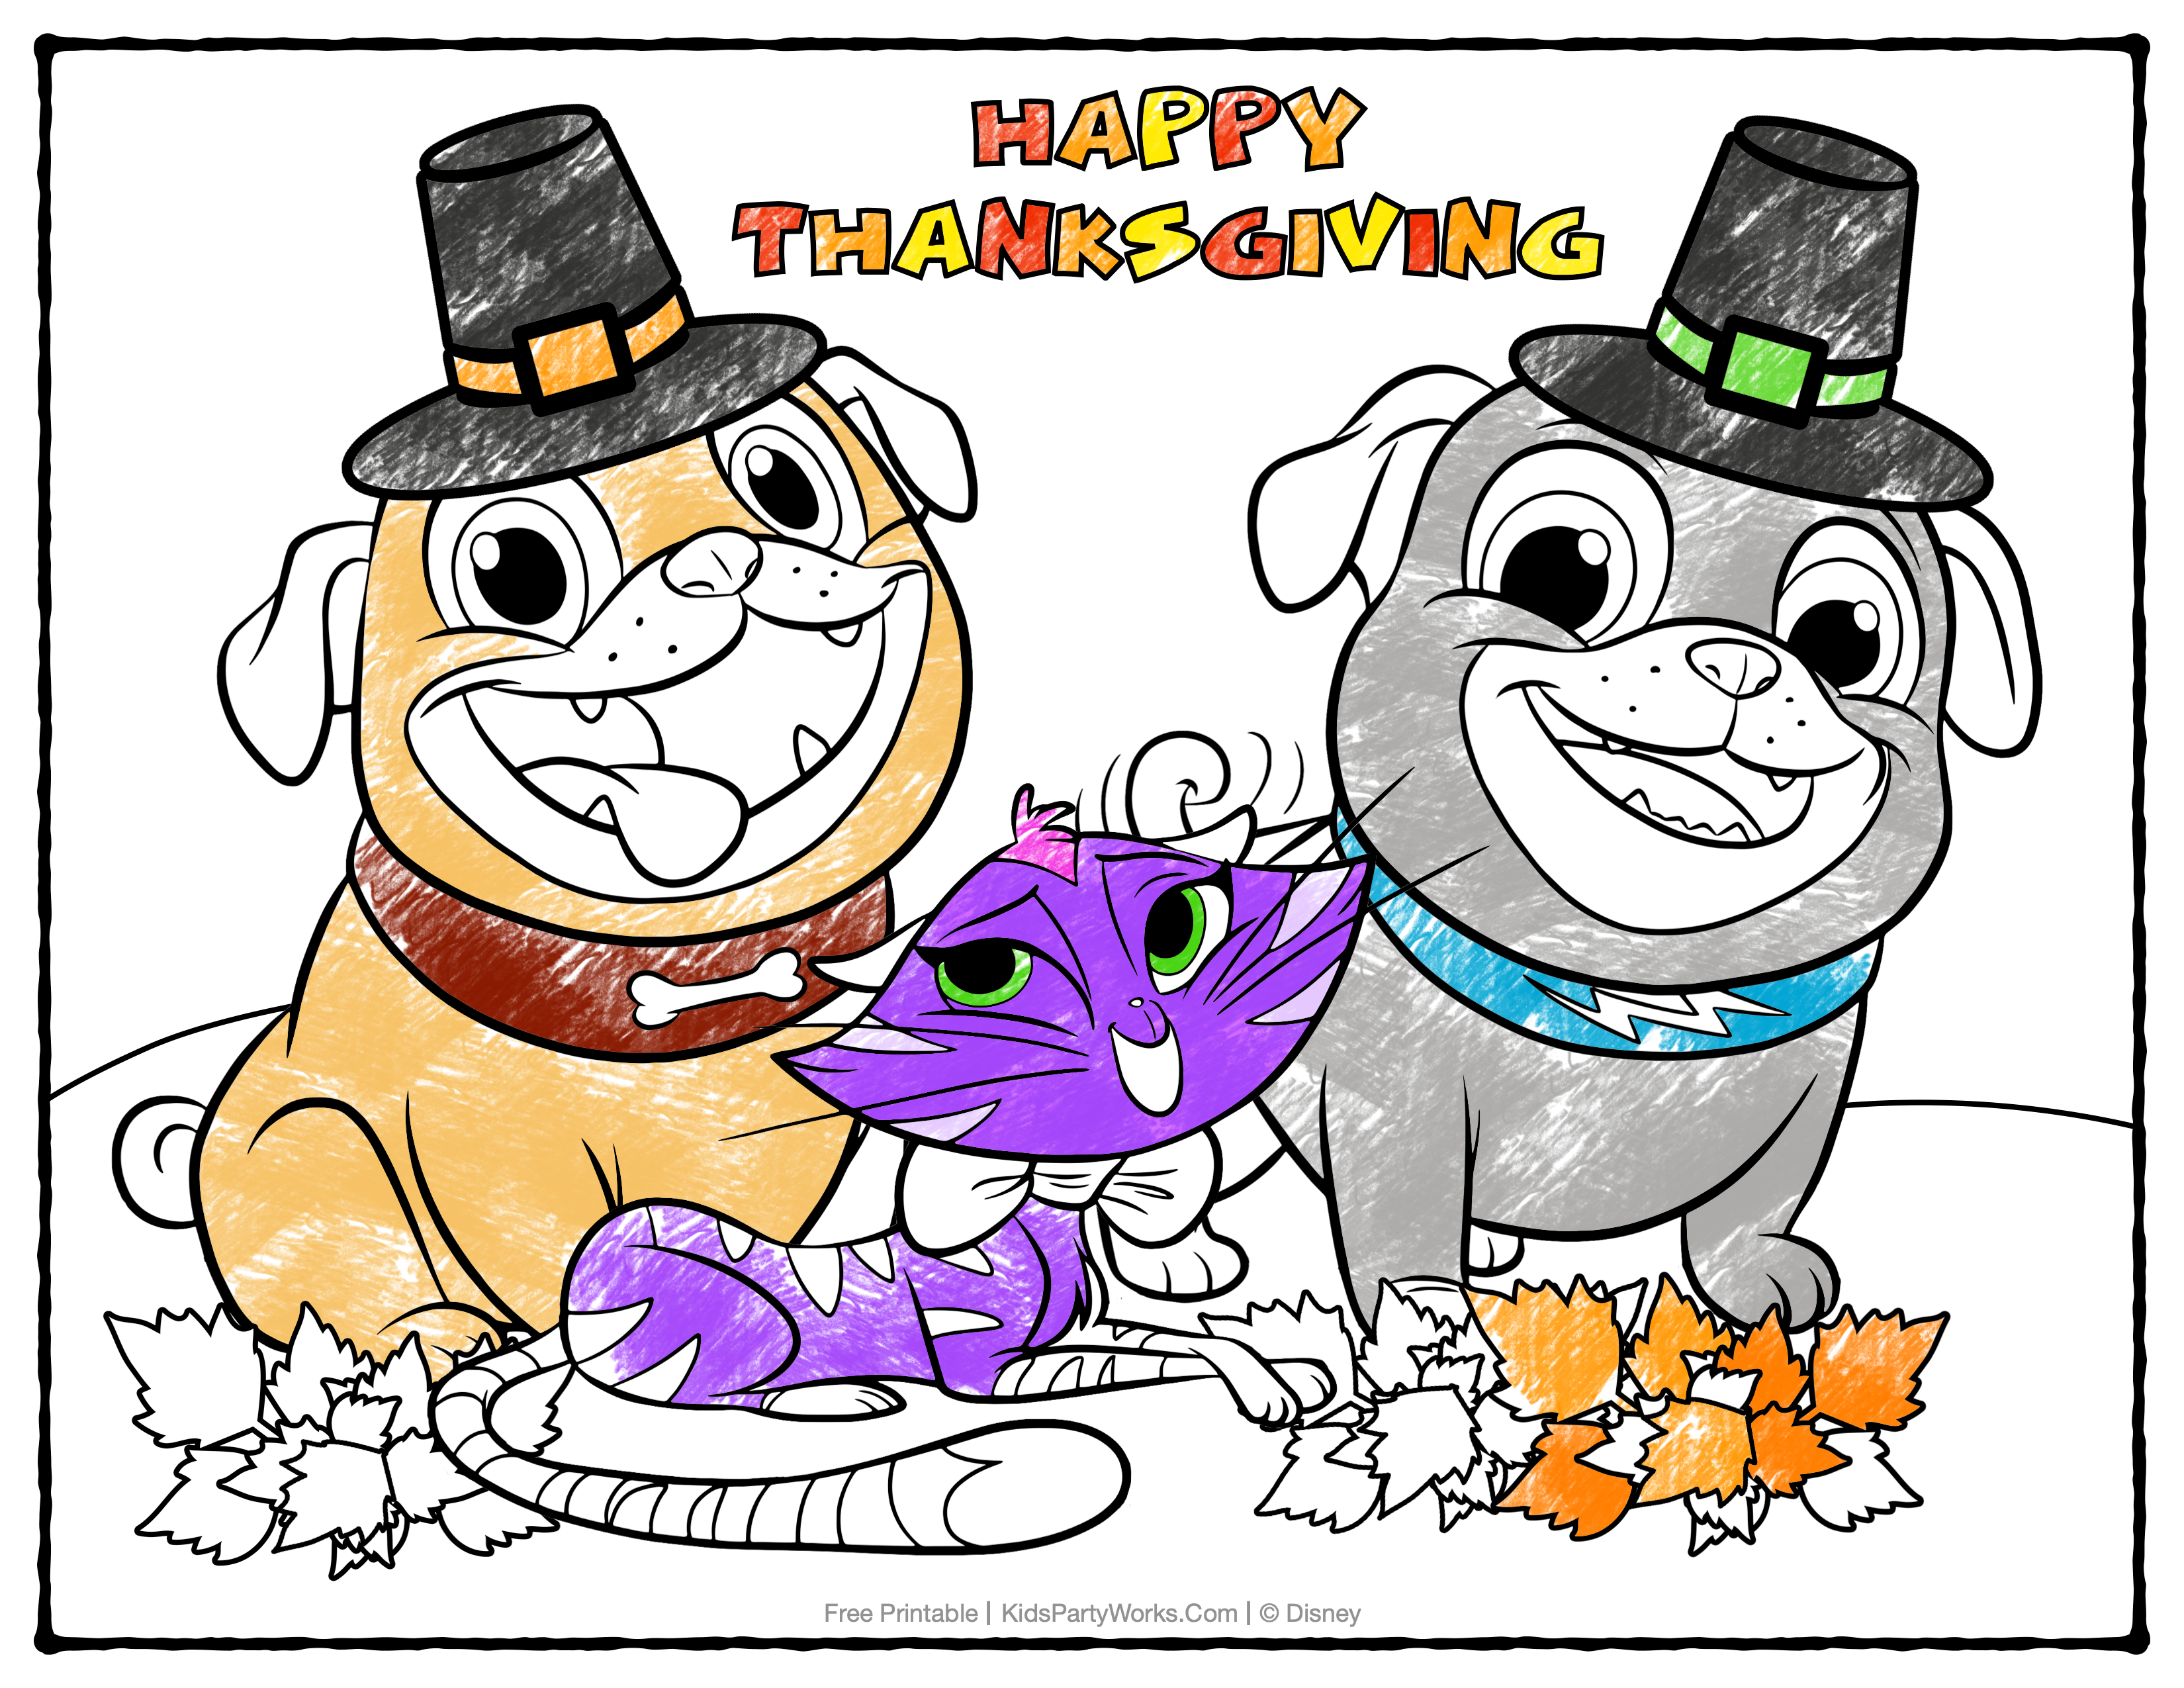 Free Puppy Dog Pals Coloring Page at KidsPartyWorks.Com